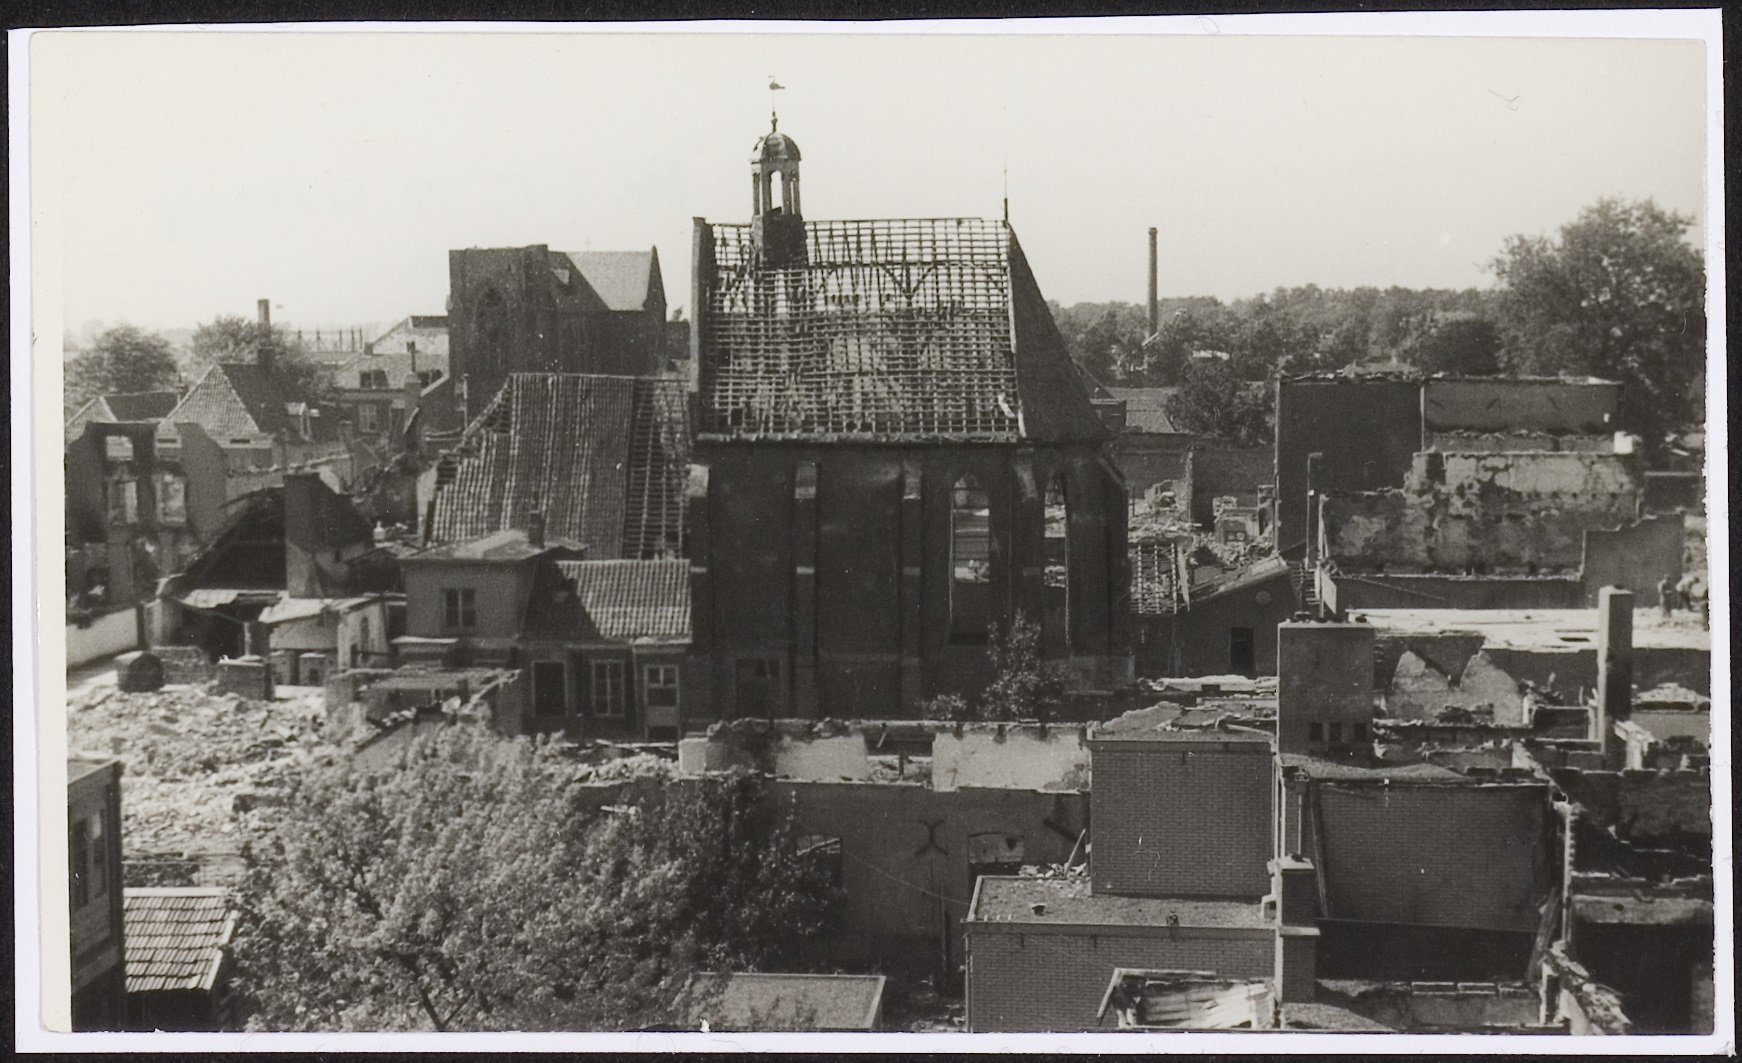 The badly damaged Lutheran church on Gasthuissteeg lane.